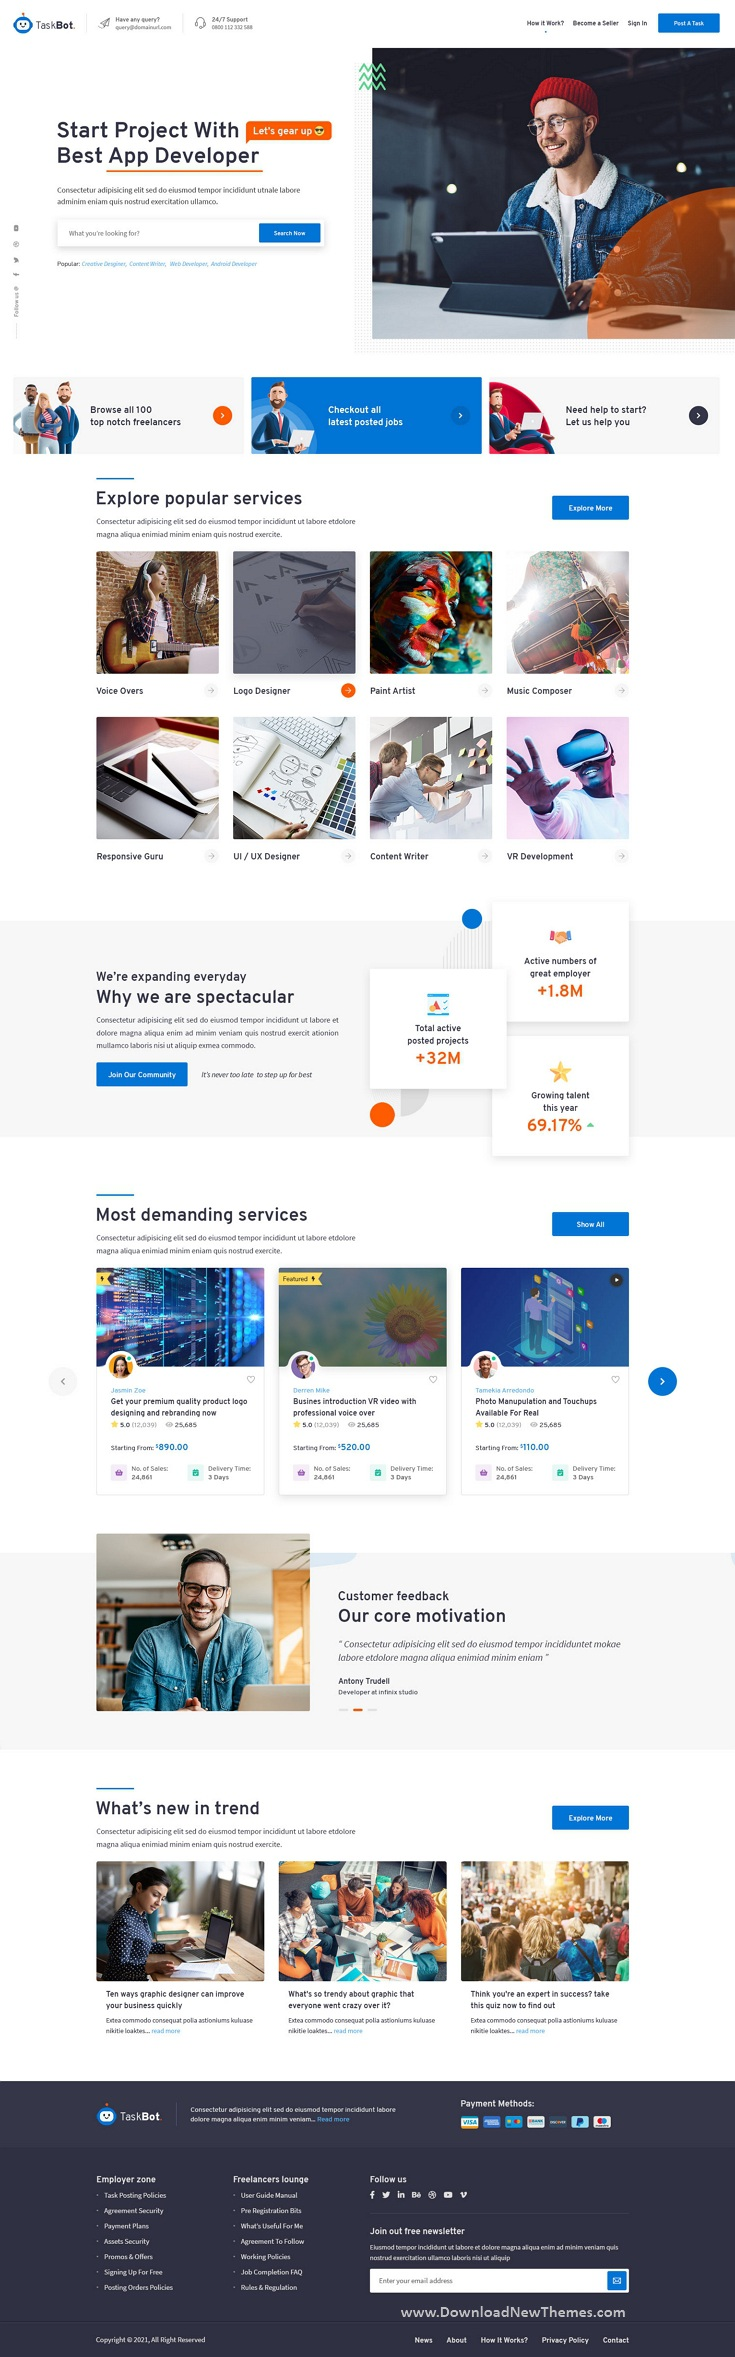 Freelancers and Jobs Market Place Photoshop Template